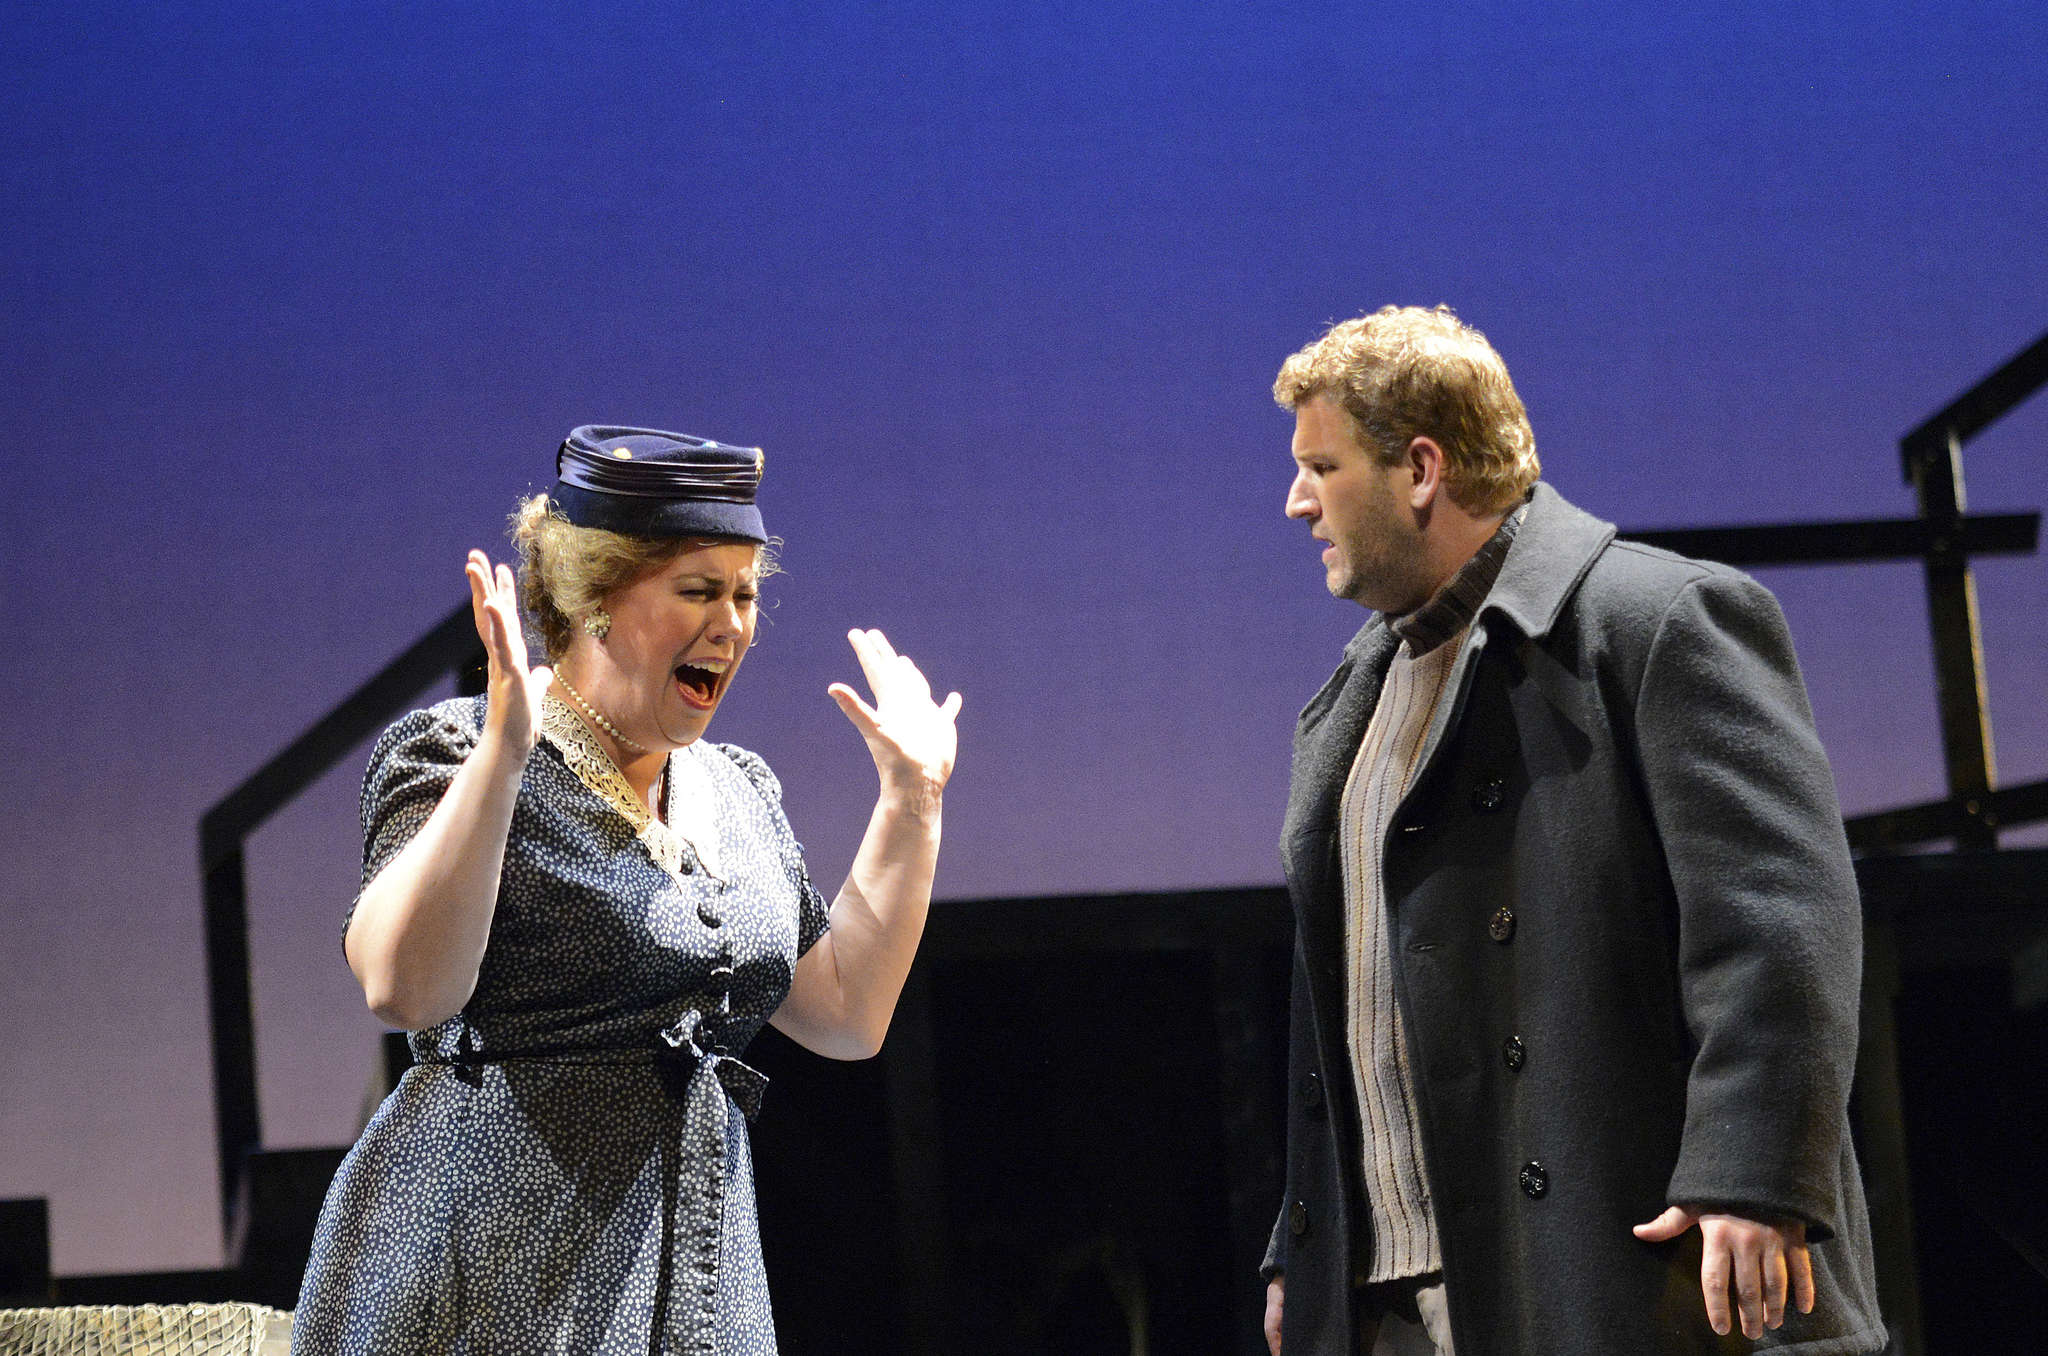 """In the Princeton Festival production of the fishing-village opera """"Peter Grimes,"""" Caroline Worra is Ellen Orford, Grimes´ woman friend, and Alex Richardson stars in the title role, whose boy apprentices die under such mysterious circumstances."""